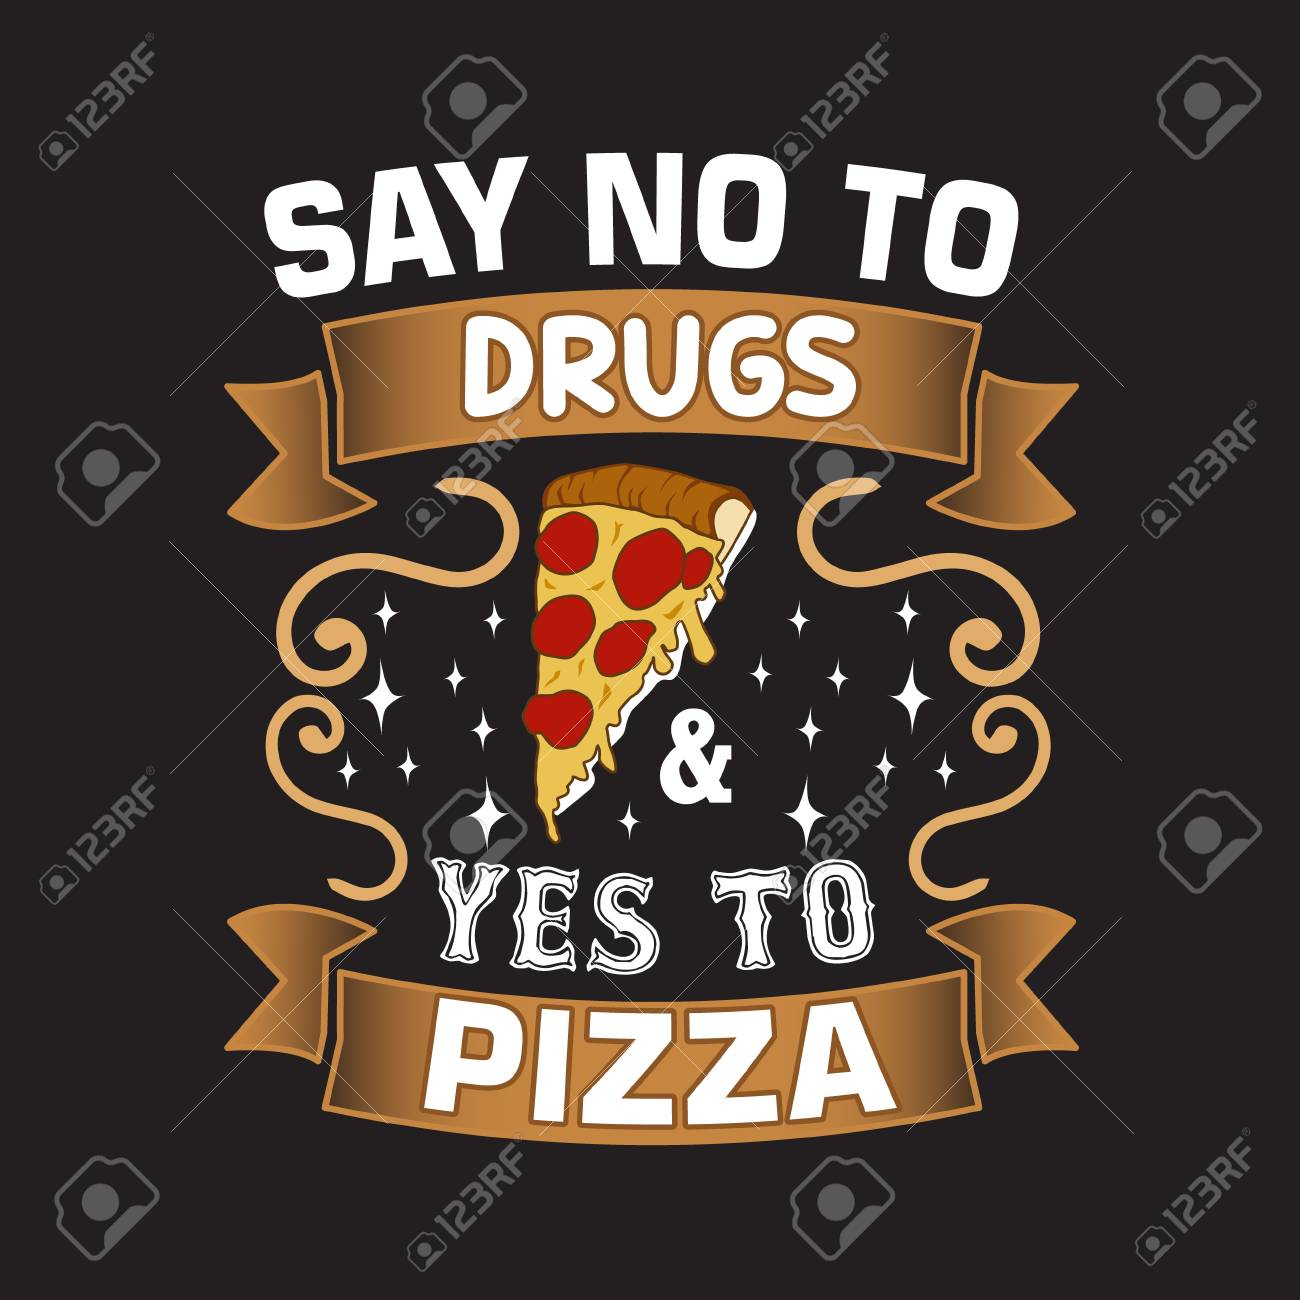 Pizza Quote And Saying Say No To Drugs And Yes To Pizza Royalty Free Cliparts Vectors And Stock Illustration Image 123159129